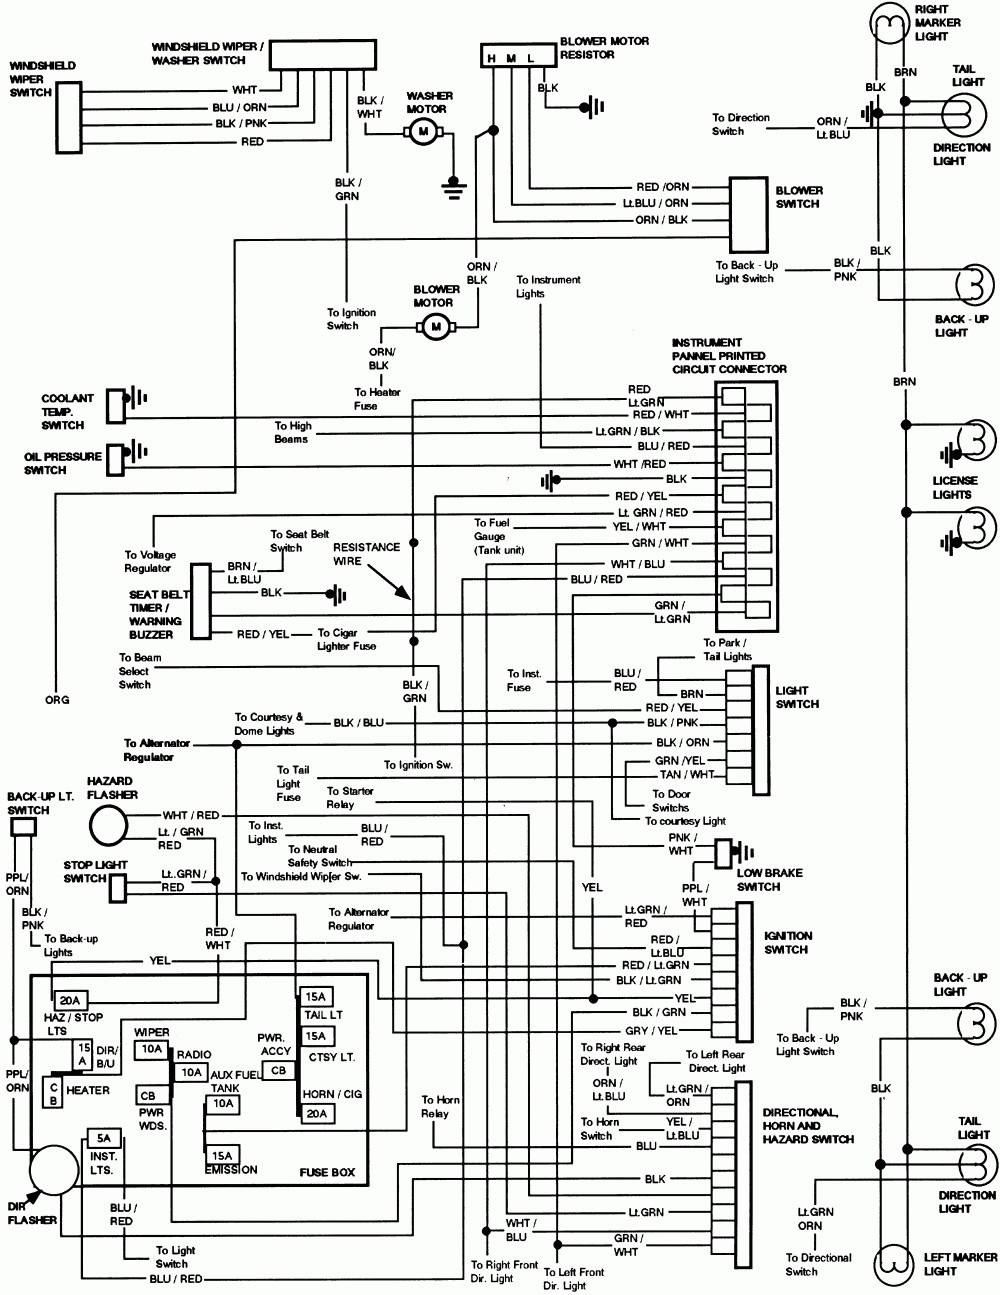 medium resolution of 1982 ford f 150 ignition module wiring diagram wiring diagram 1982 ford ignition wiring